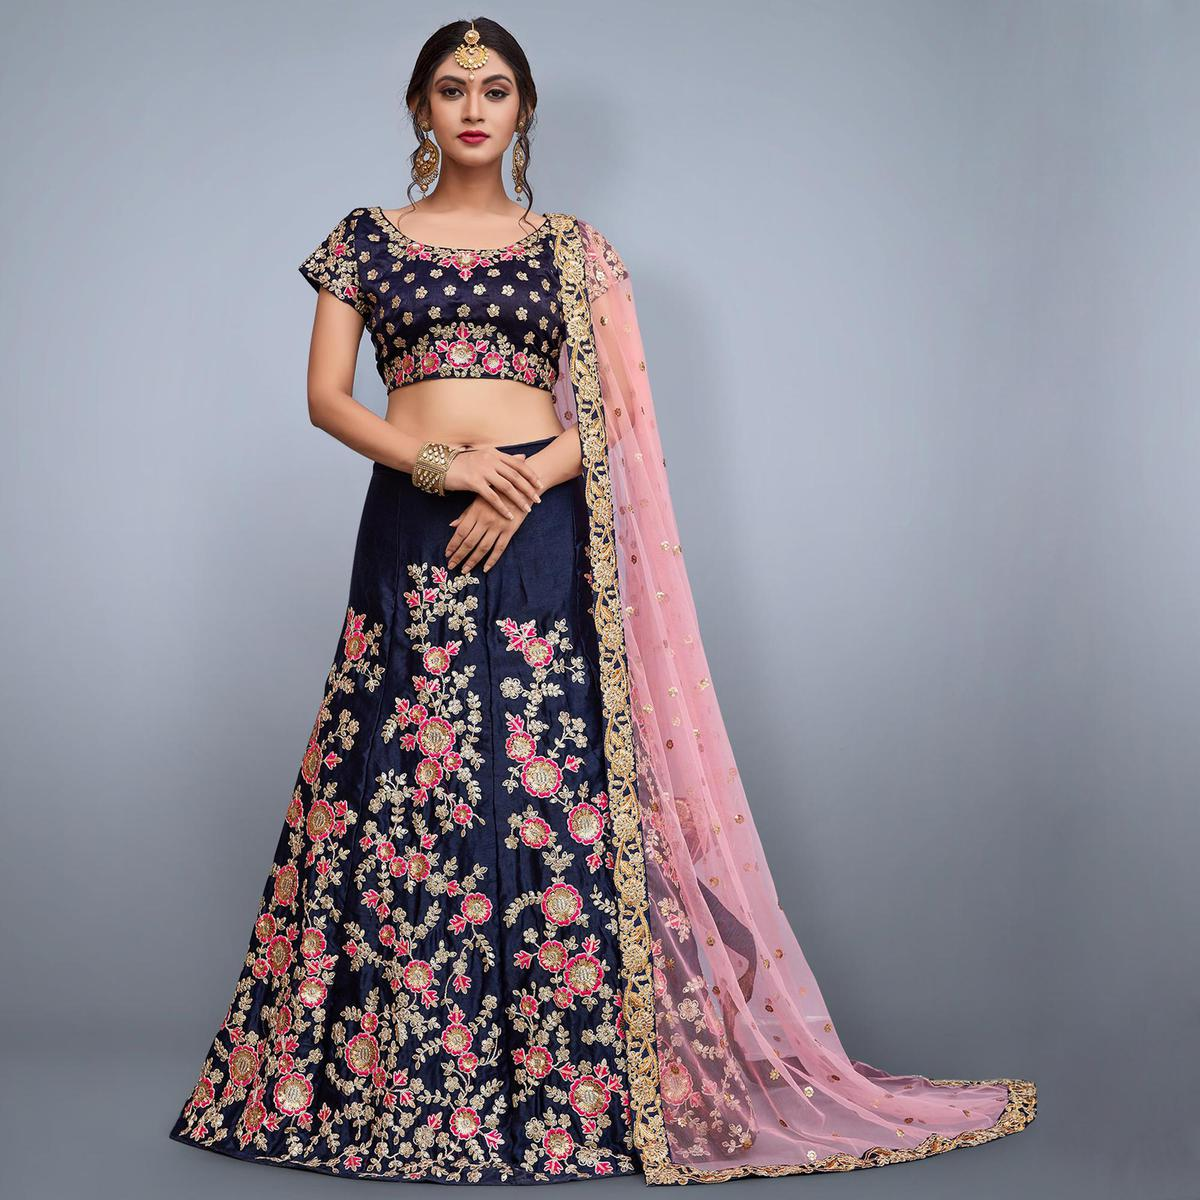 da7dc27ebf Buy Mesmeric Navy Blue Colored Partywear Embroidered Velvet Silk Lehenga  Choli for womens online India, Best Prices, Reviews - Peachmode